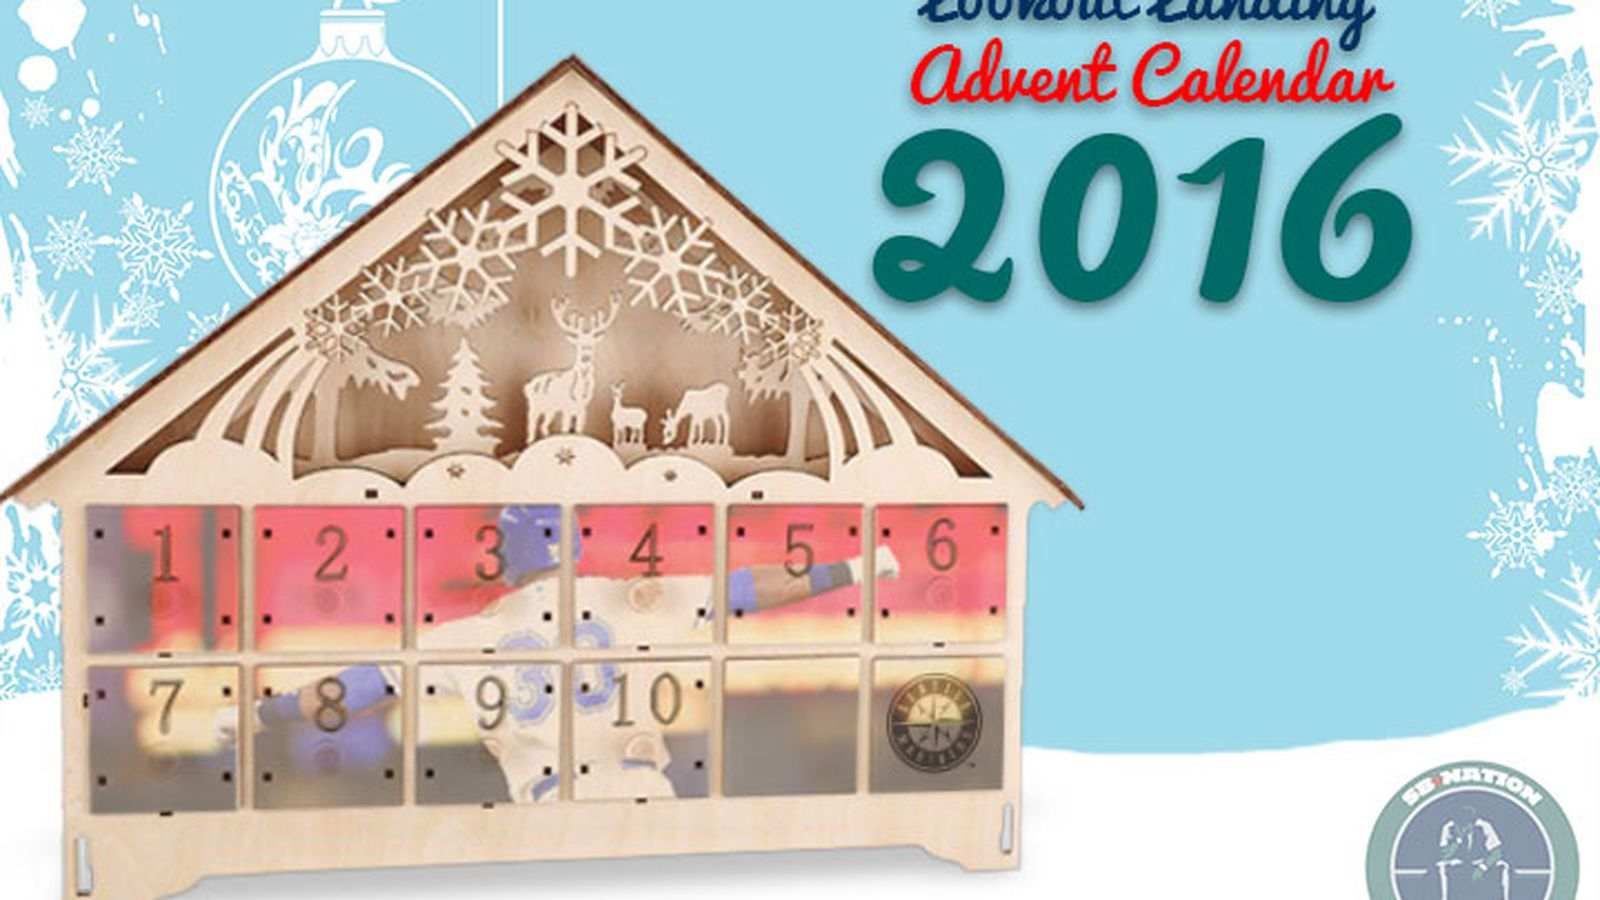 Wooden_advent_calendars_with_ornaments_as_advent_calendars_to_make_for_interior_design_inspiration_81415_22.0